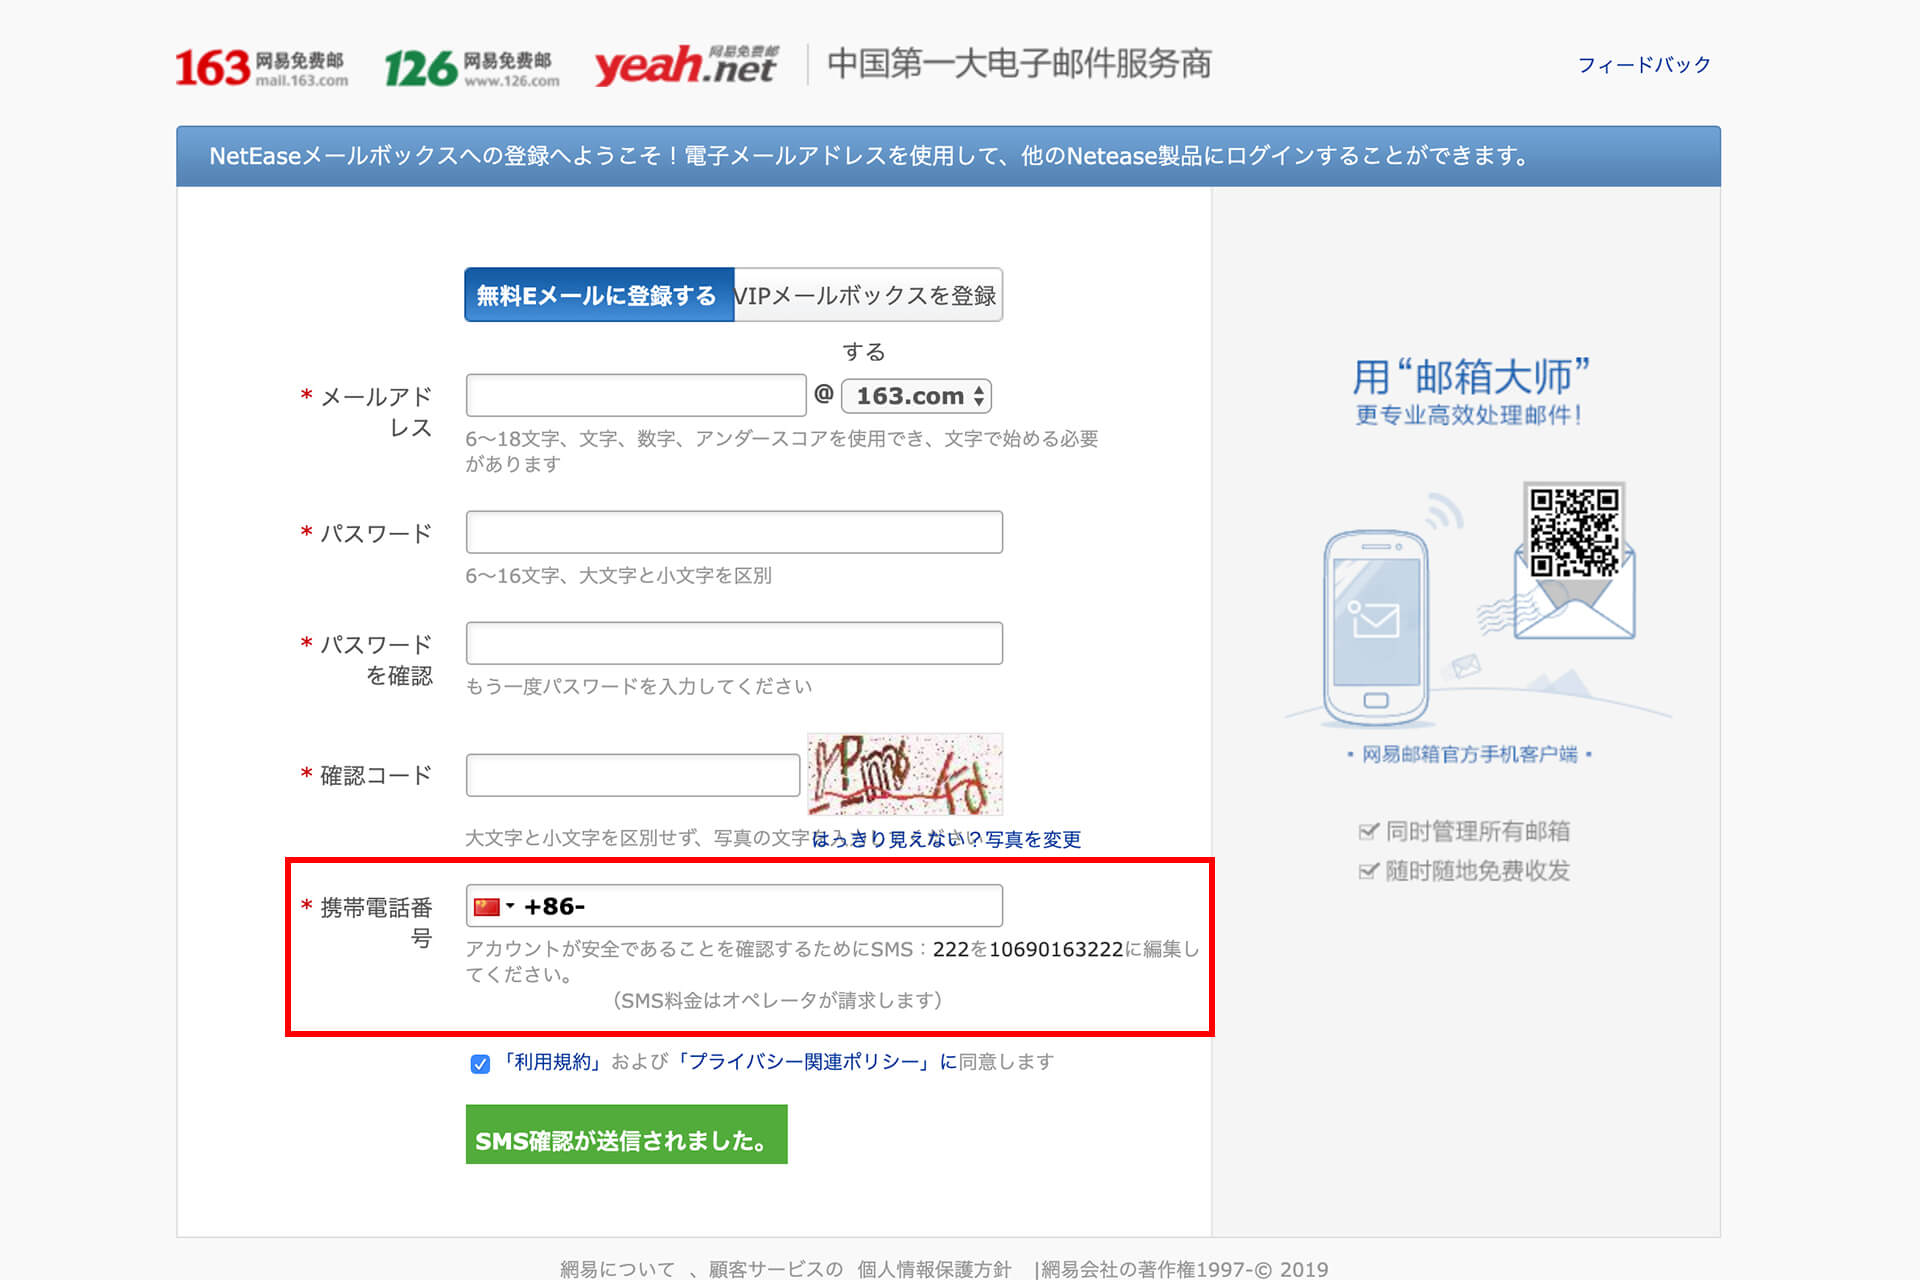 netease-mail-page1